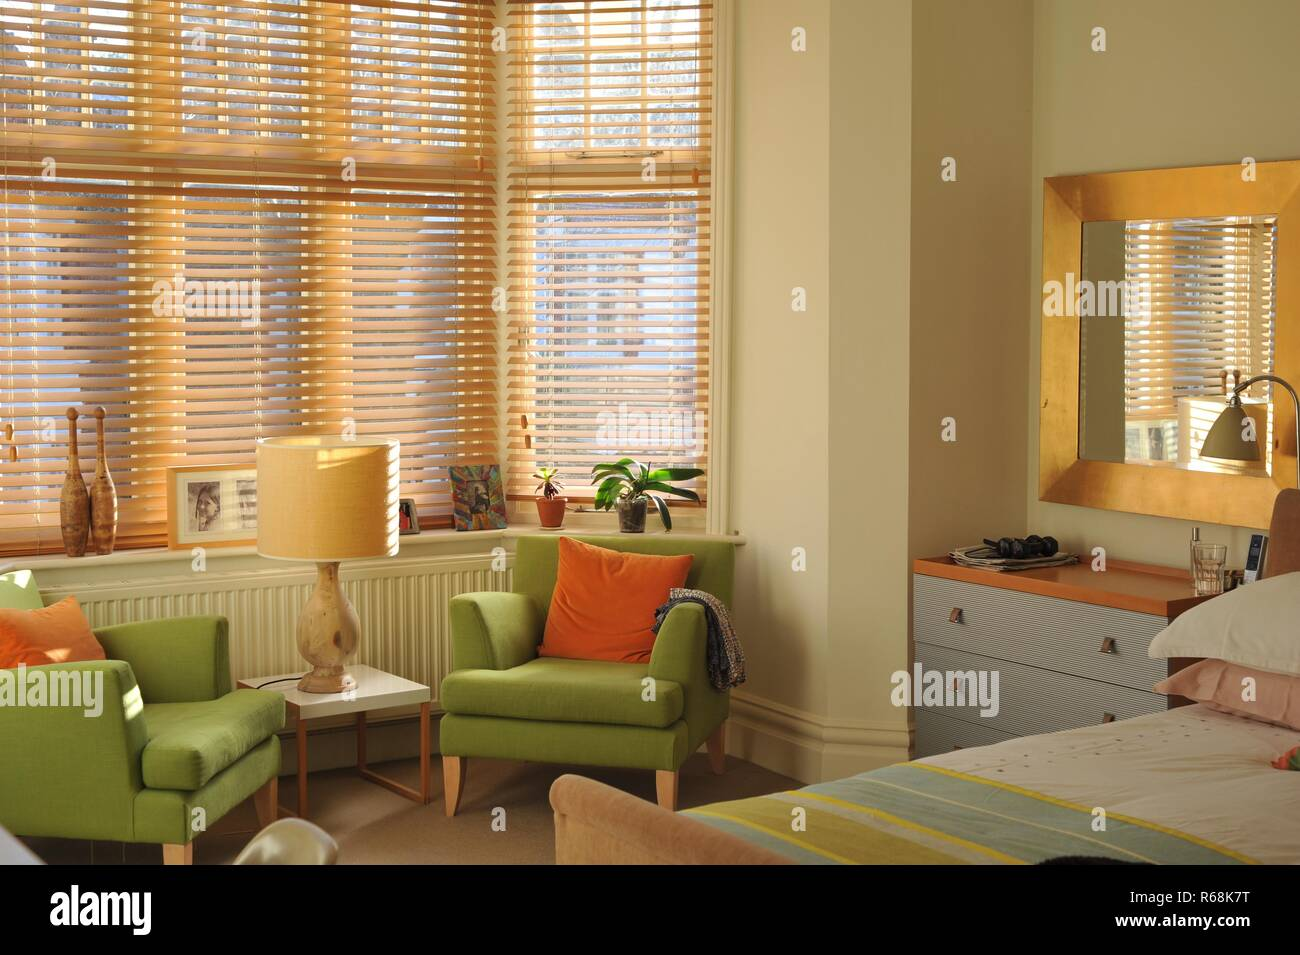 cosy colourful living space - Stock Image